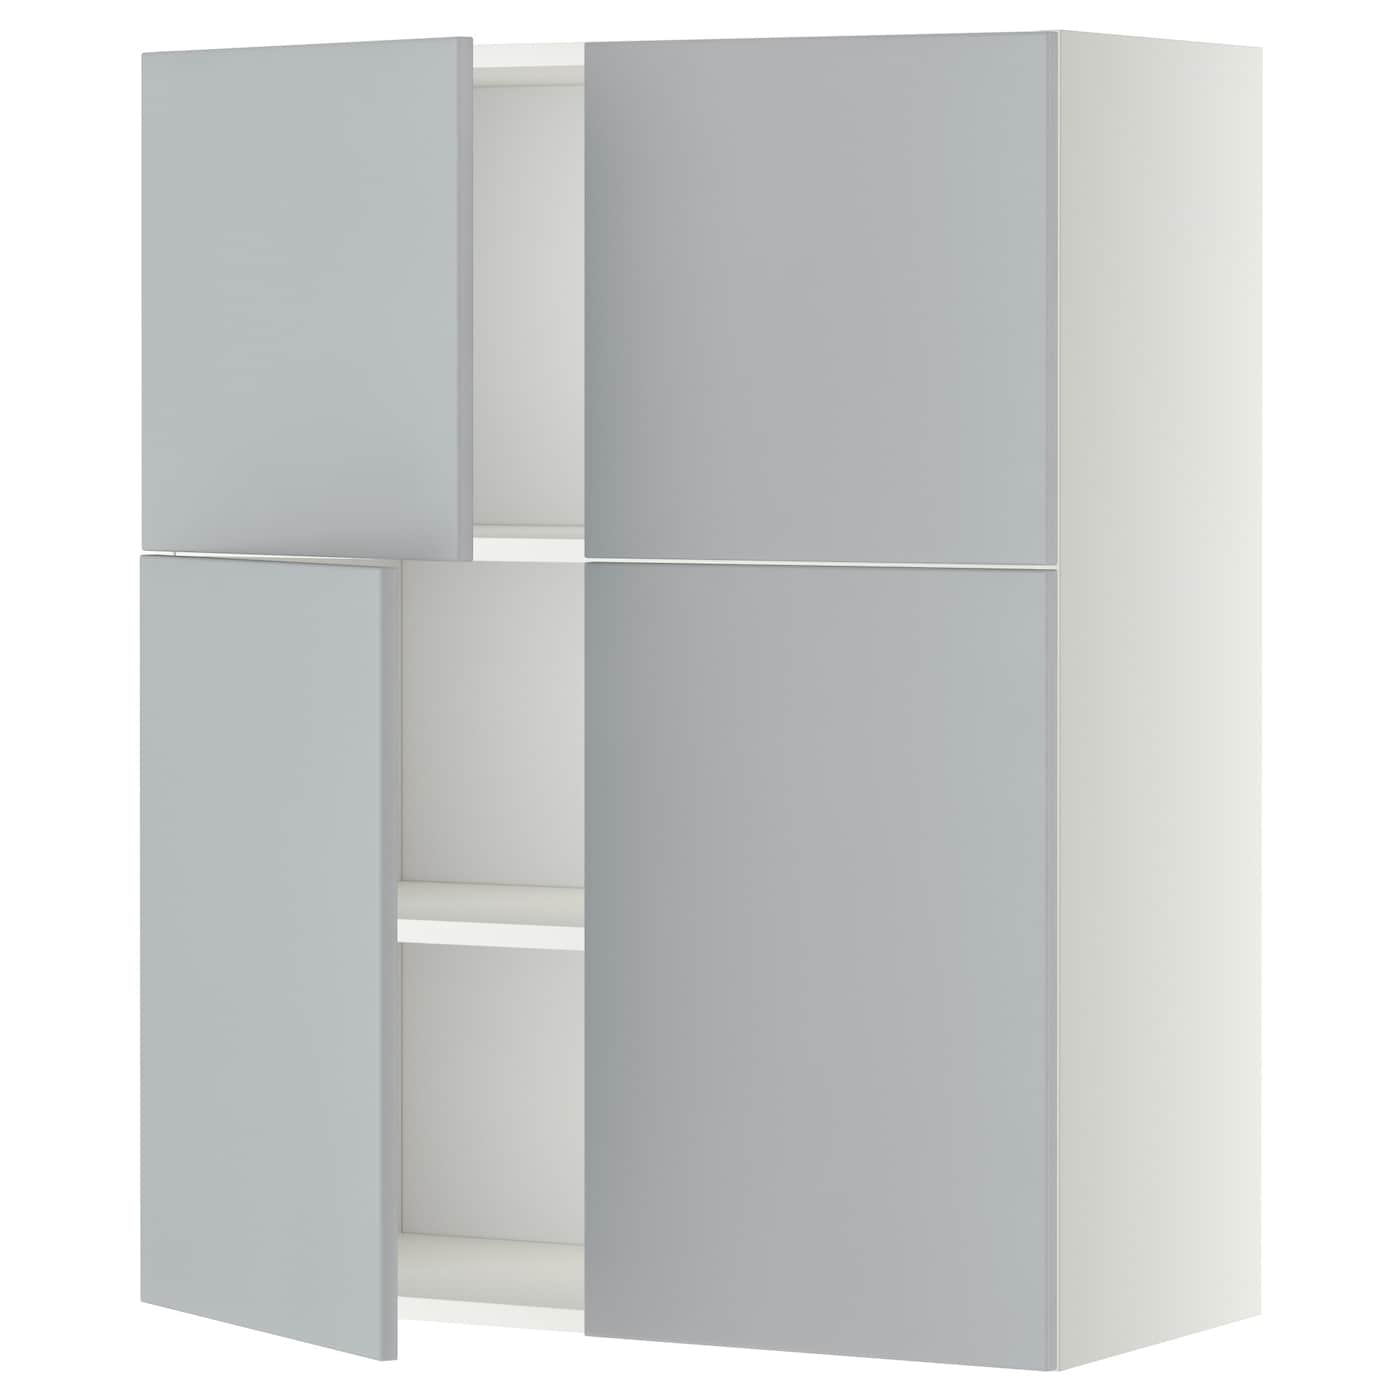 Metod wall cabinet with shelves 4 doors white veddinge for Glass kitchen wall units